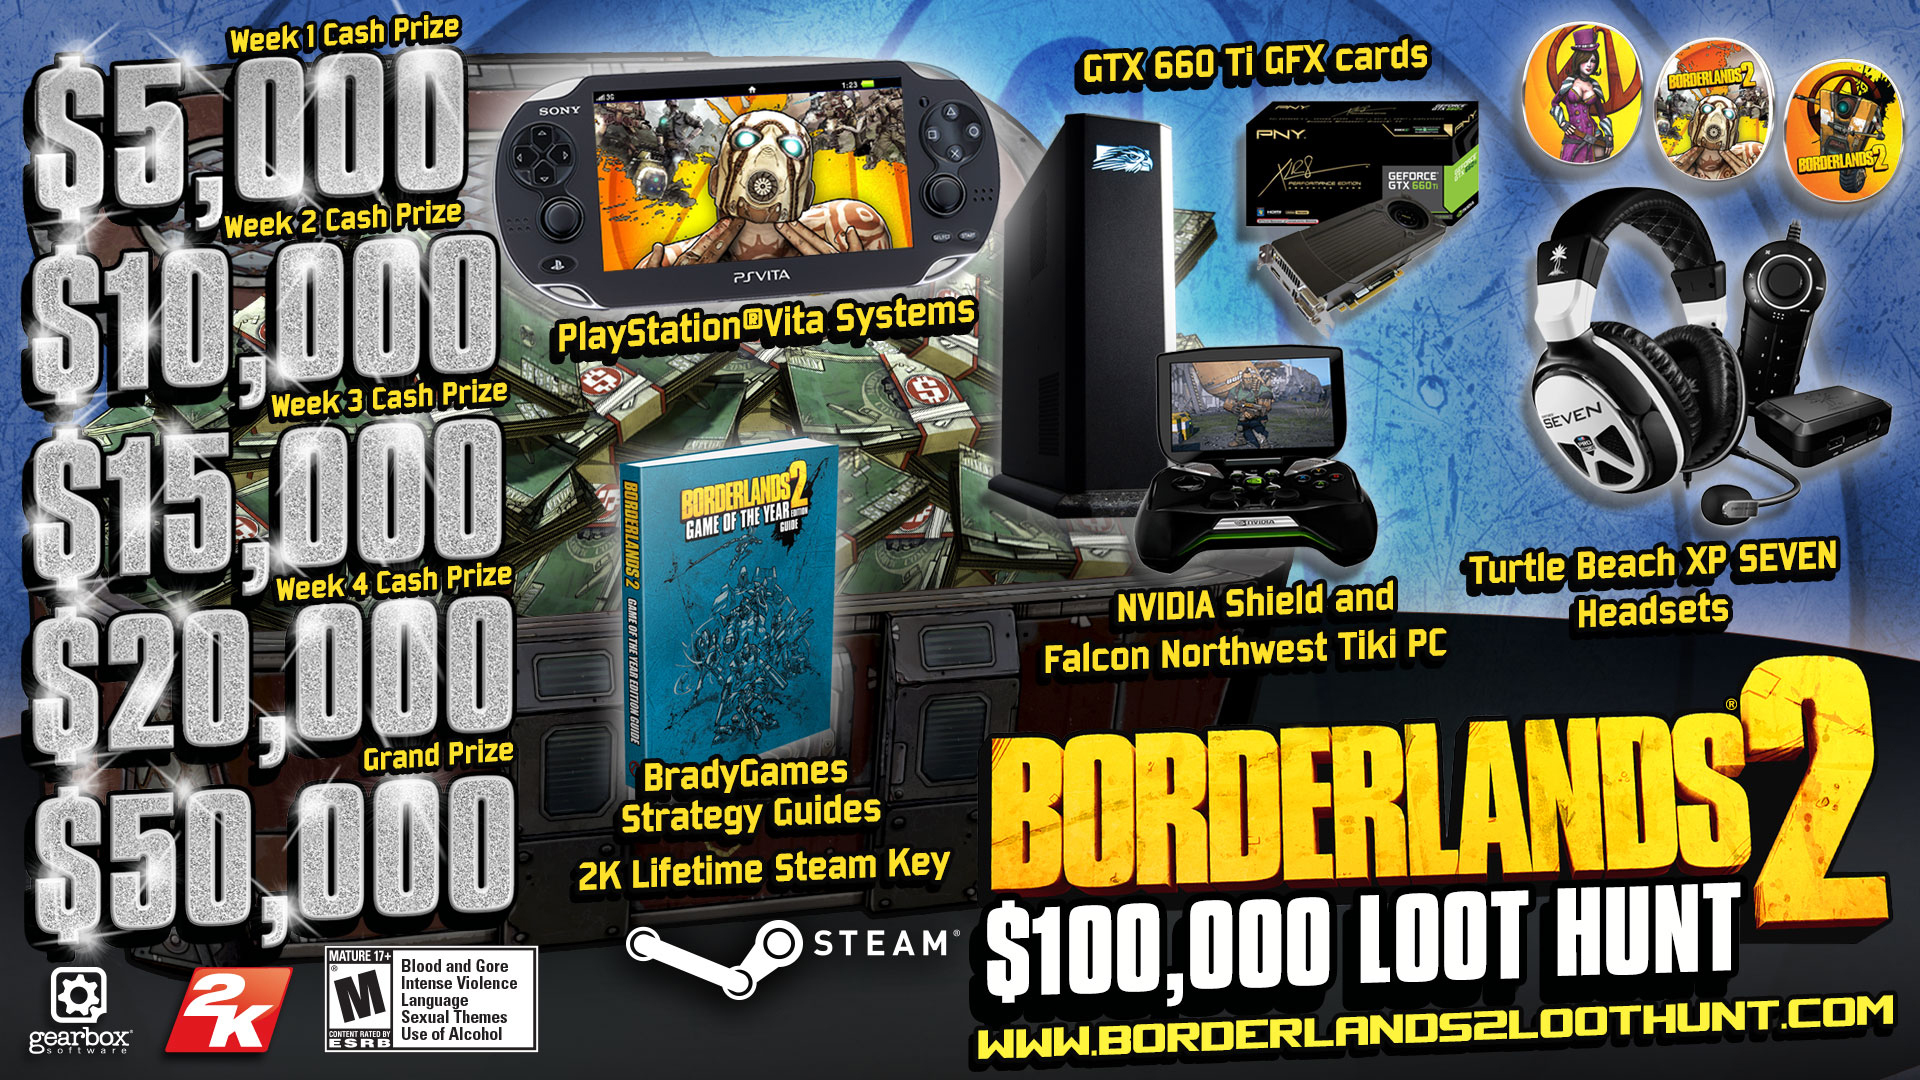 For the Vault Hunters interested in real-life loot, the Borderlands 2 $100,000 Loot Hunt starts this Friday, October 11, 2013 at 11:00 a.m. EDT. (Graphic: Business Wire)